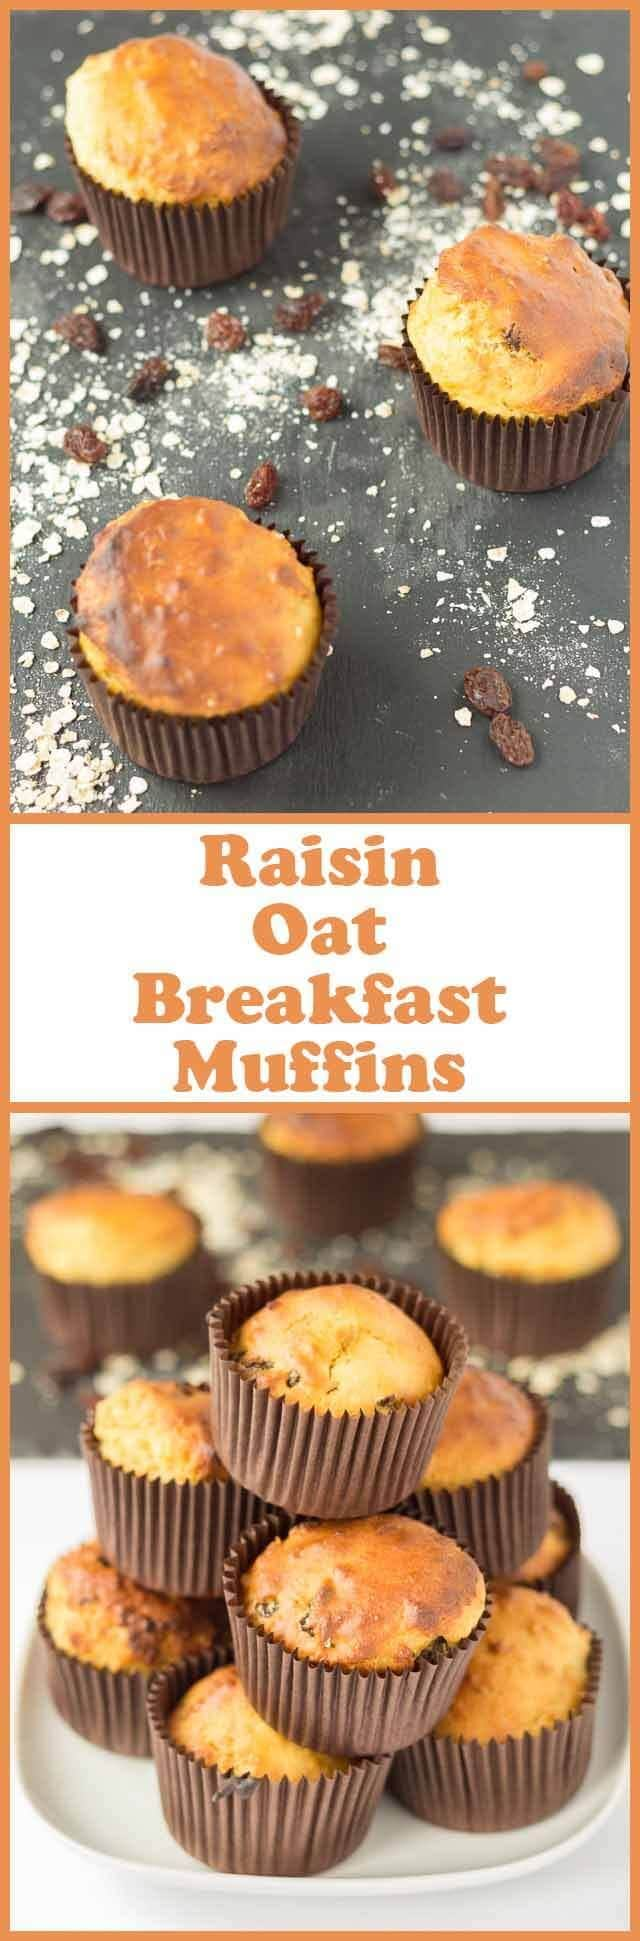 Raisin oat breakfast muffins are a great grab and go breakfast. These healthy muffins are made with oats, orange juice, honey, Greek yogurt and raisins. A complete breakfast in one!